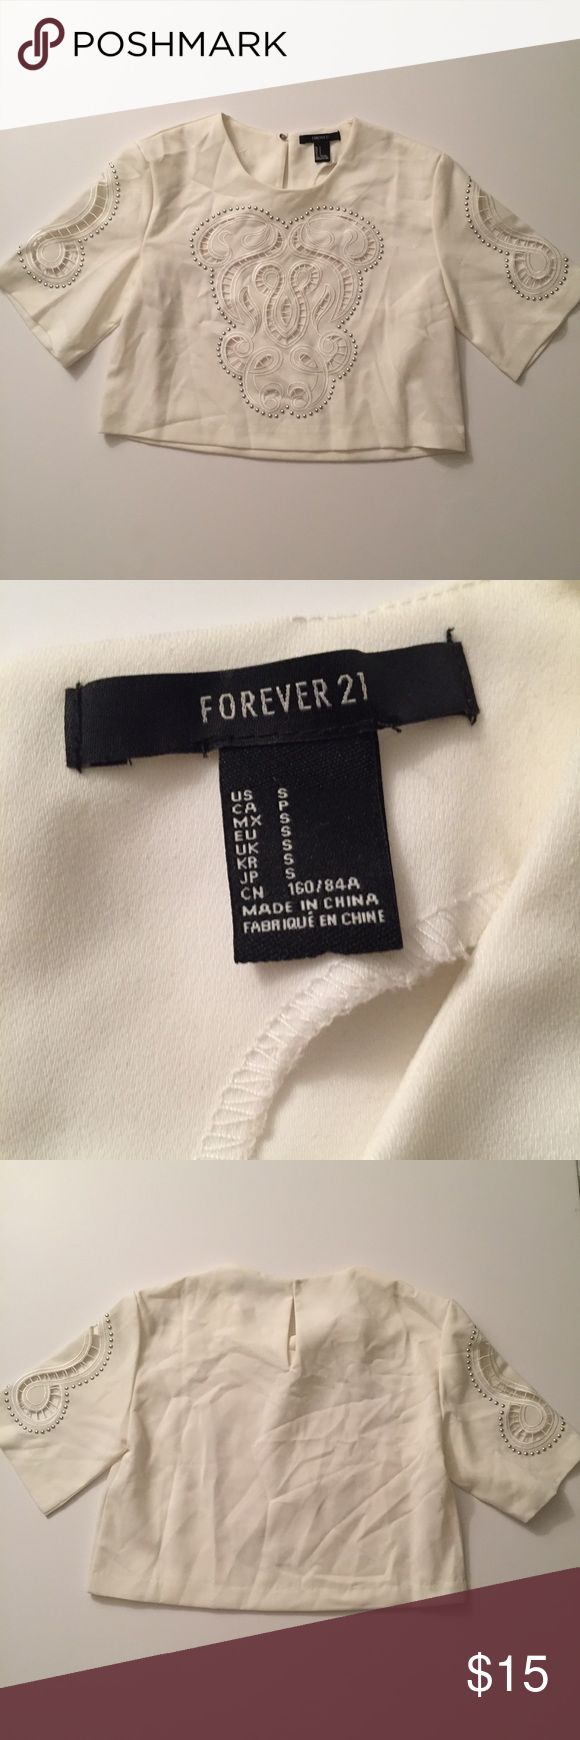 Like New forever 21 boxy crop-S Like new only worn once or twice for pics.  Size small white crop embellished Tags: mura, tiger mist, showpo, sabo skirt, white fox, missguided, h and m, hello Molly, Stelly, hot Miami styles, fashion nova, princess Polly, verge girl, pop cherry, forever 21, Nordstrom, revolve Forever 21 Tops Crop Tops